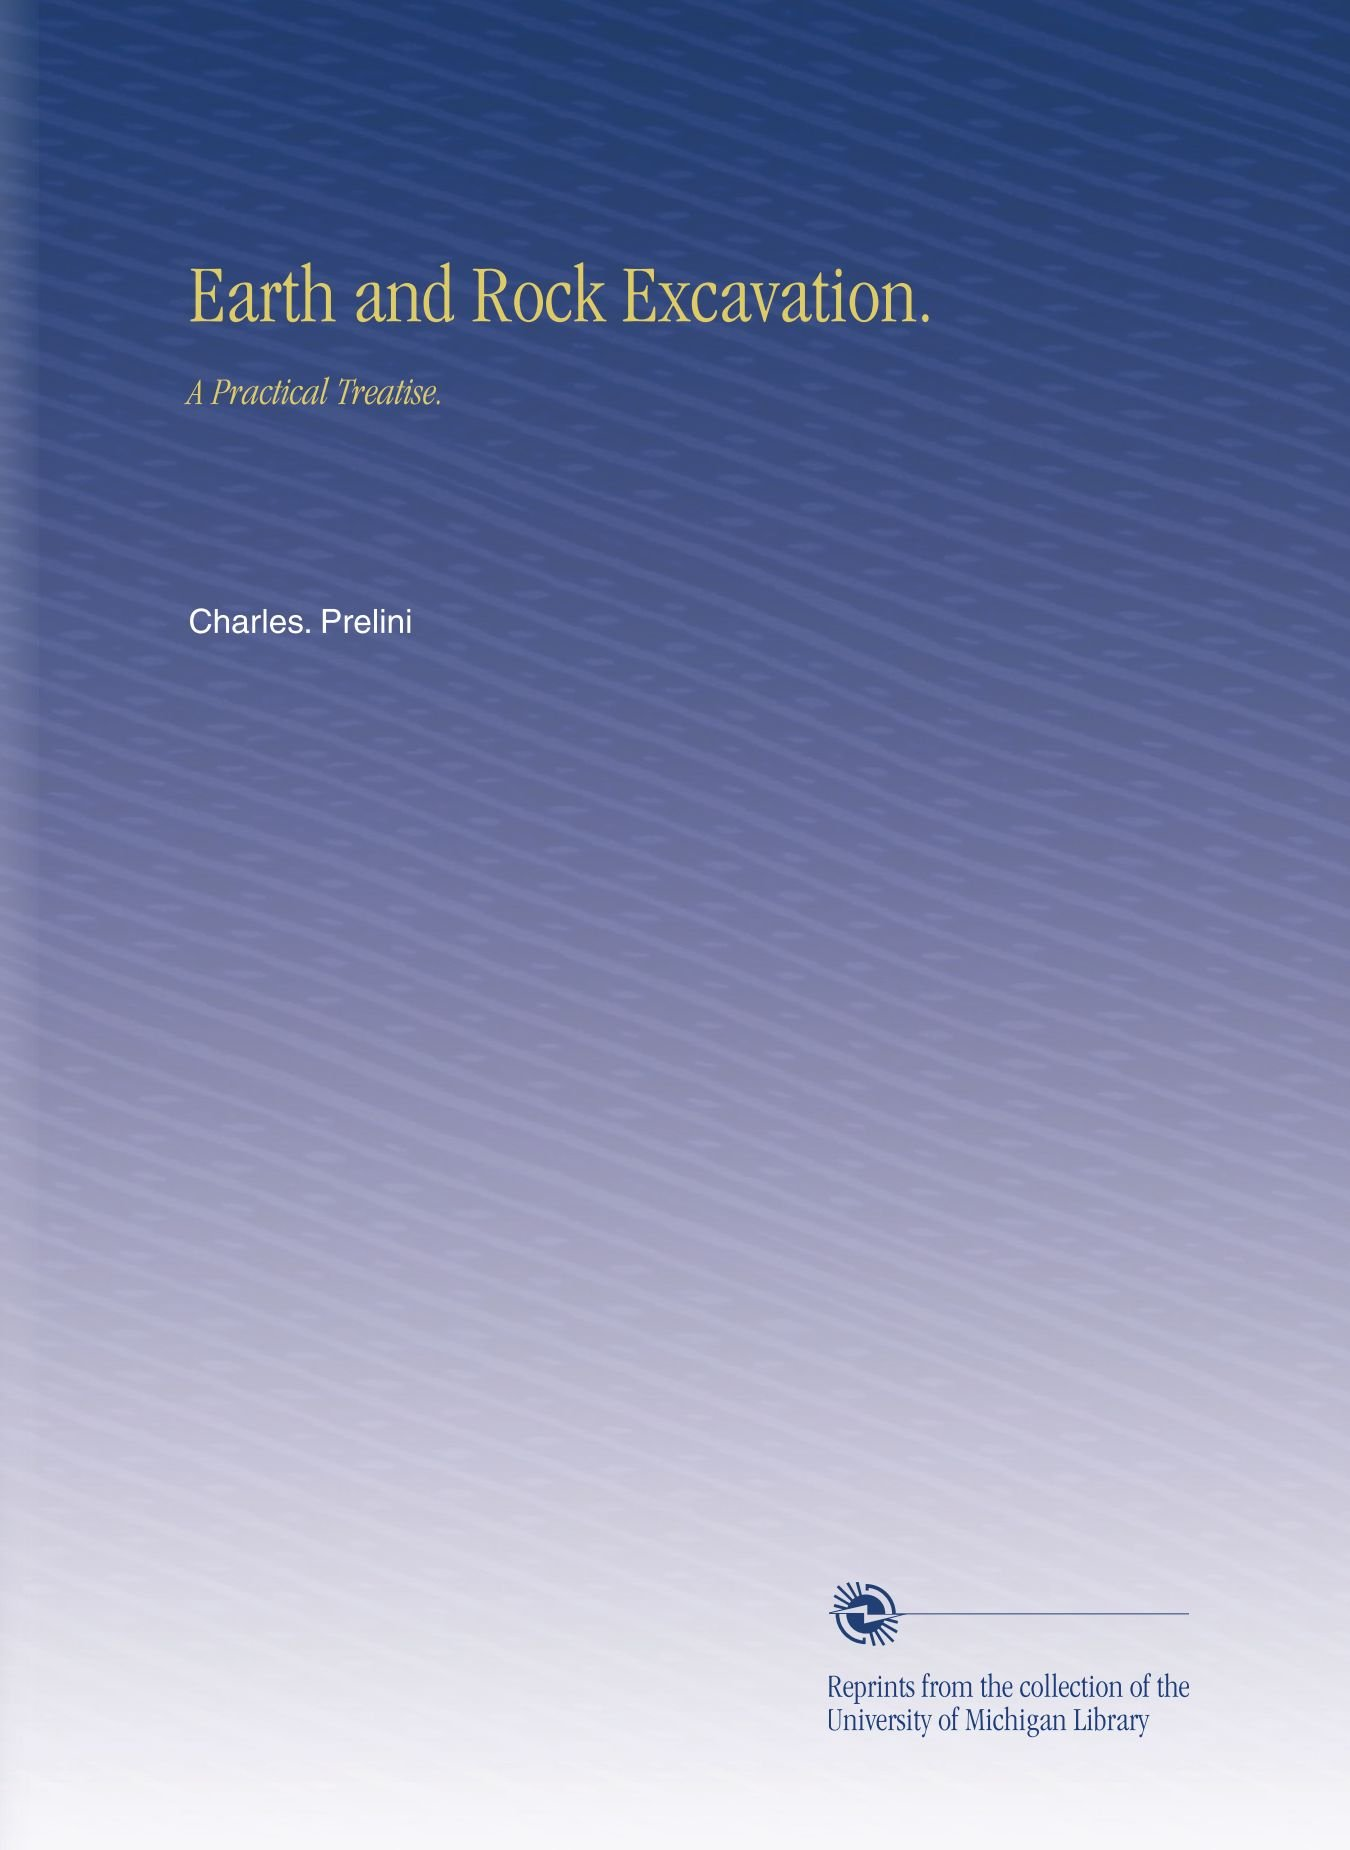 Download Earth and Rock Excavation.: A Practical Treatise. pdf